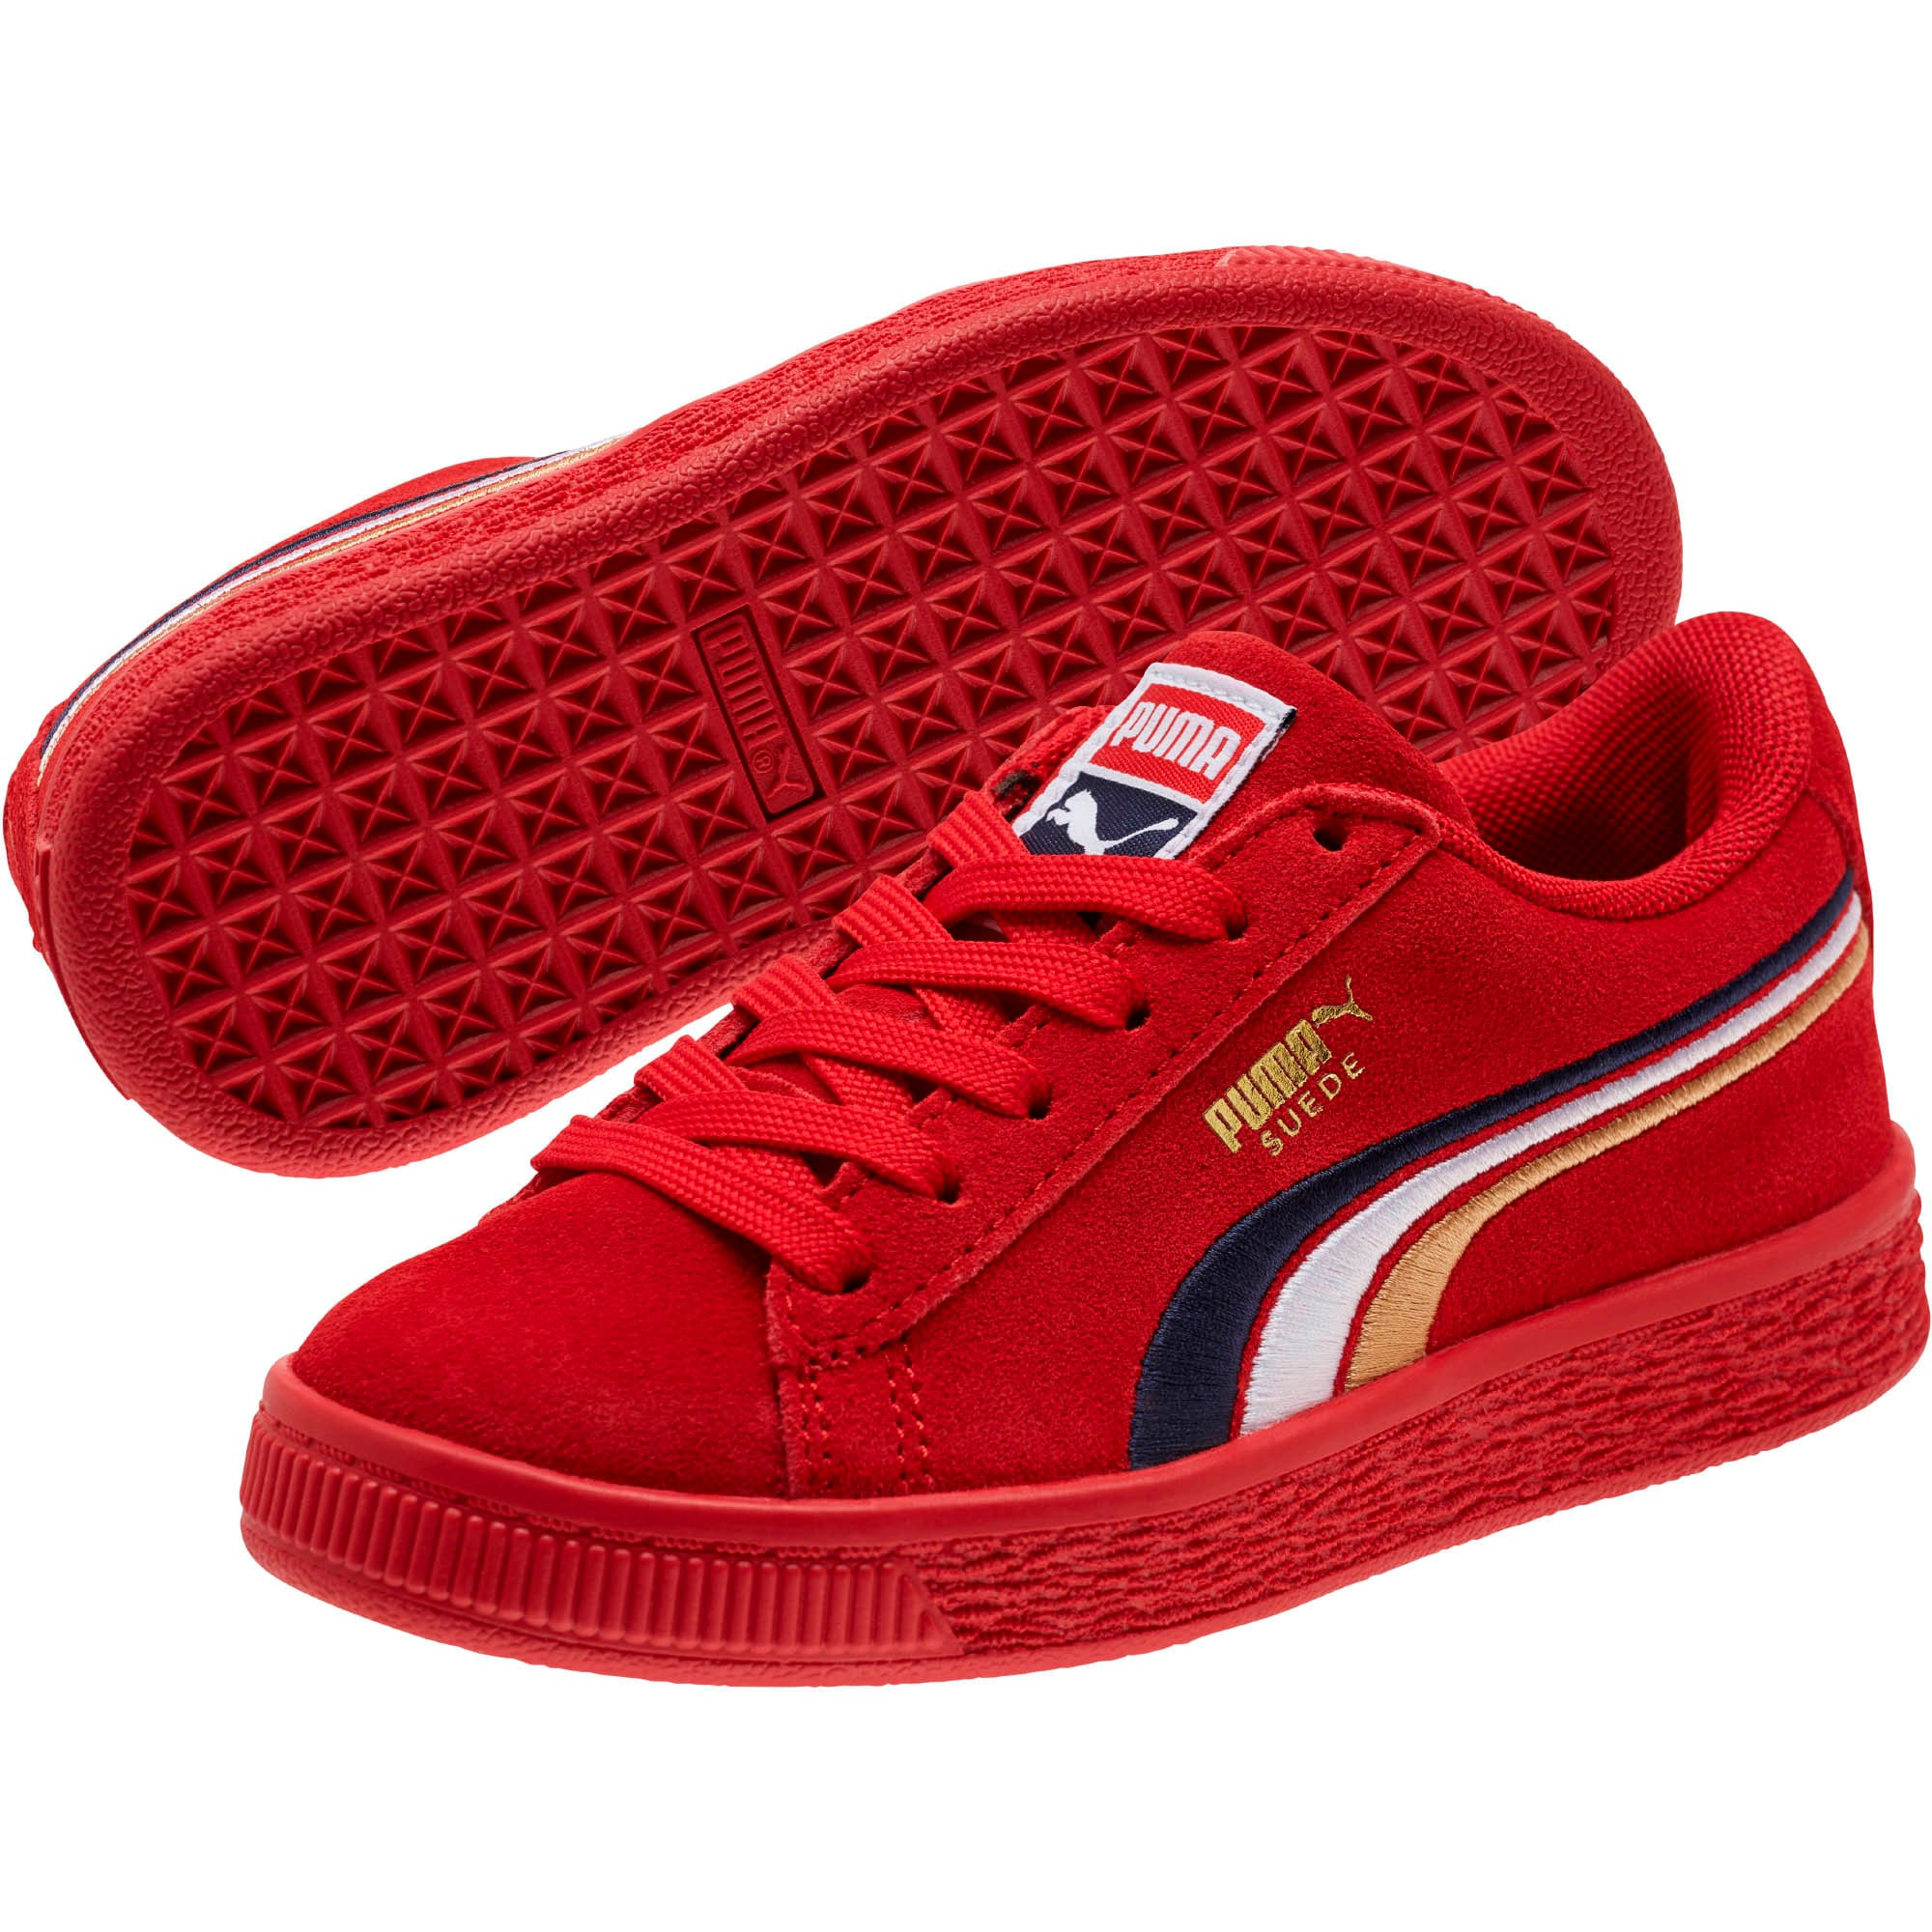 Thumbnail 2 of Suede Classic Multicolor Embroidery Little Kid's Shoes, Red-Peacoat-White-Gold, medium